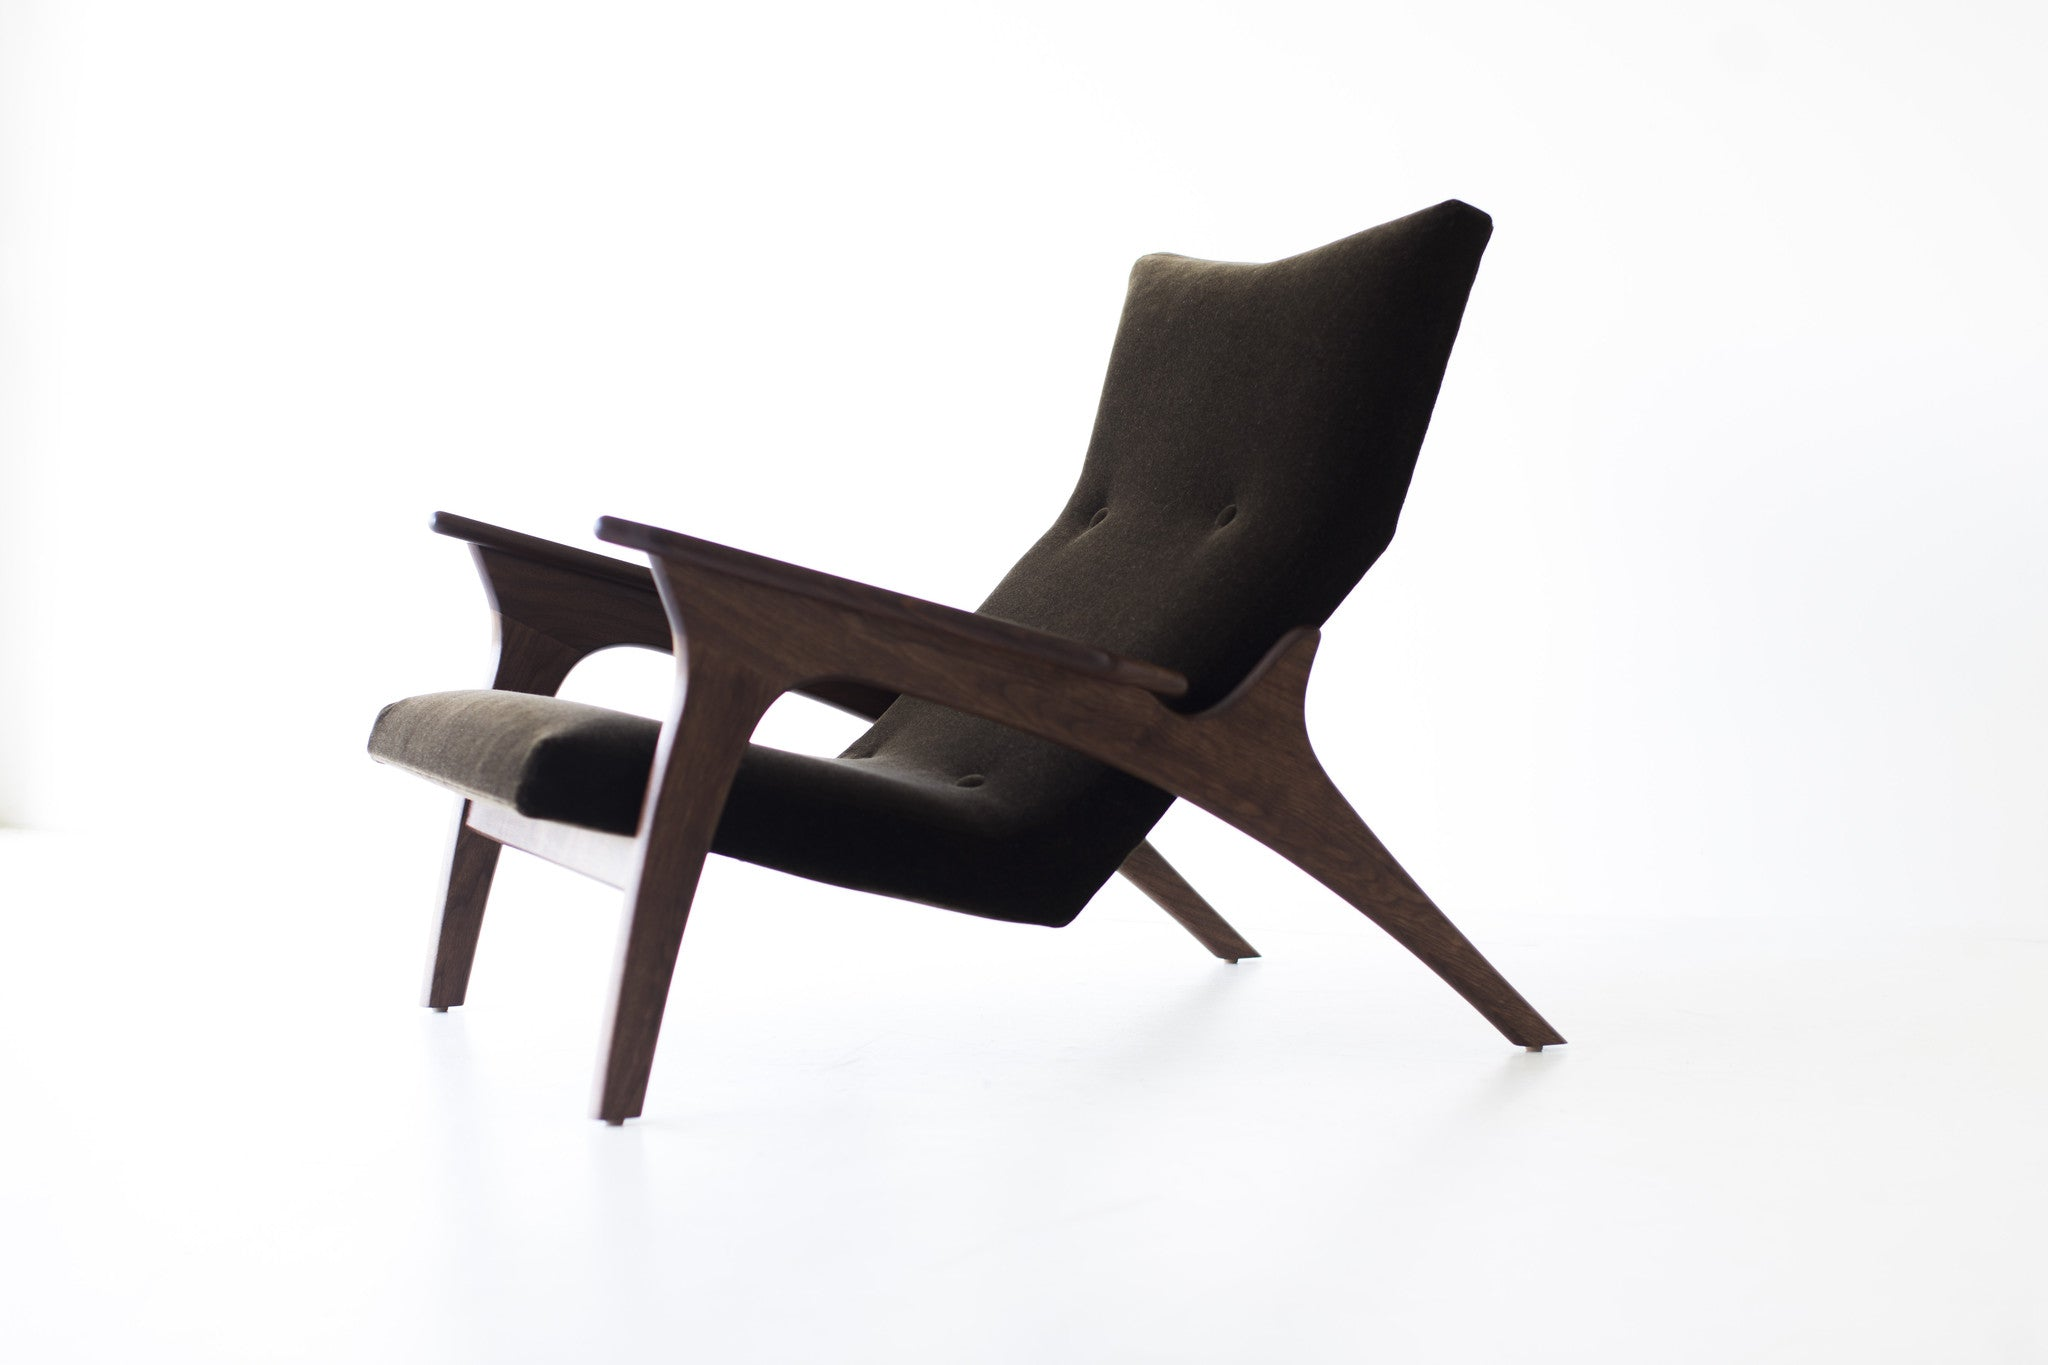 modern-wooden-arm-wing-chair-1521-craft-associates-furniture-09